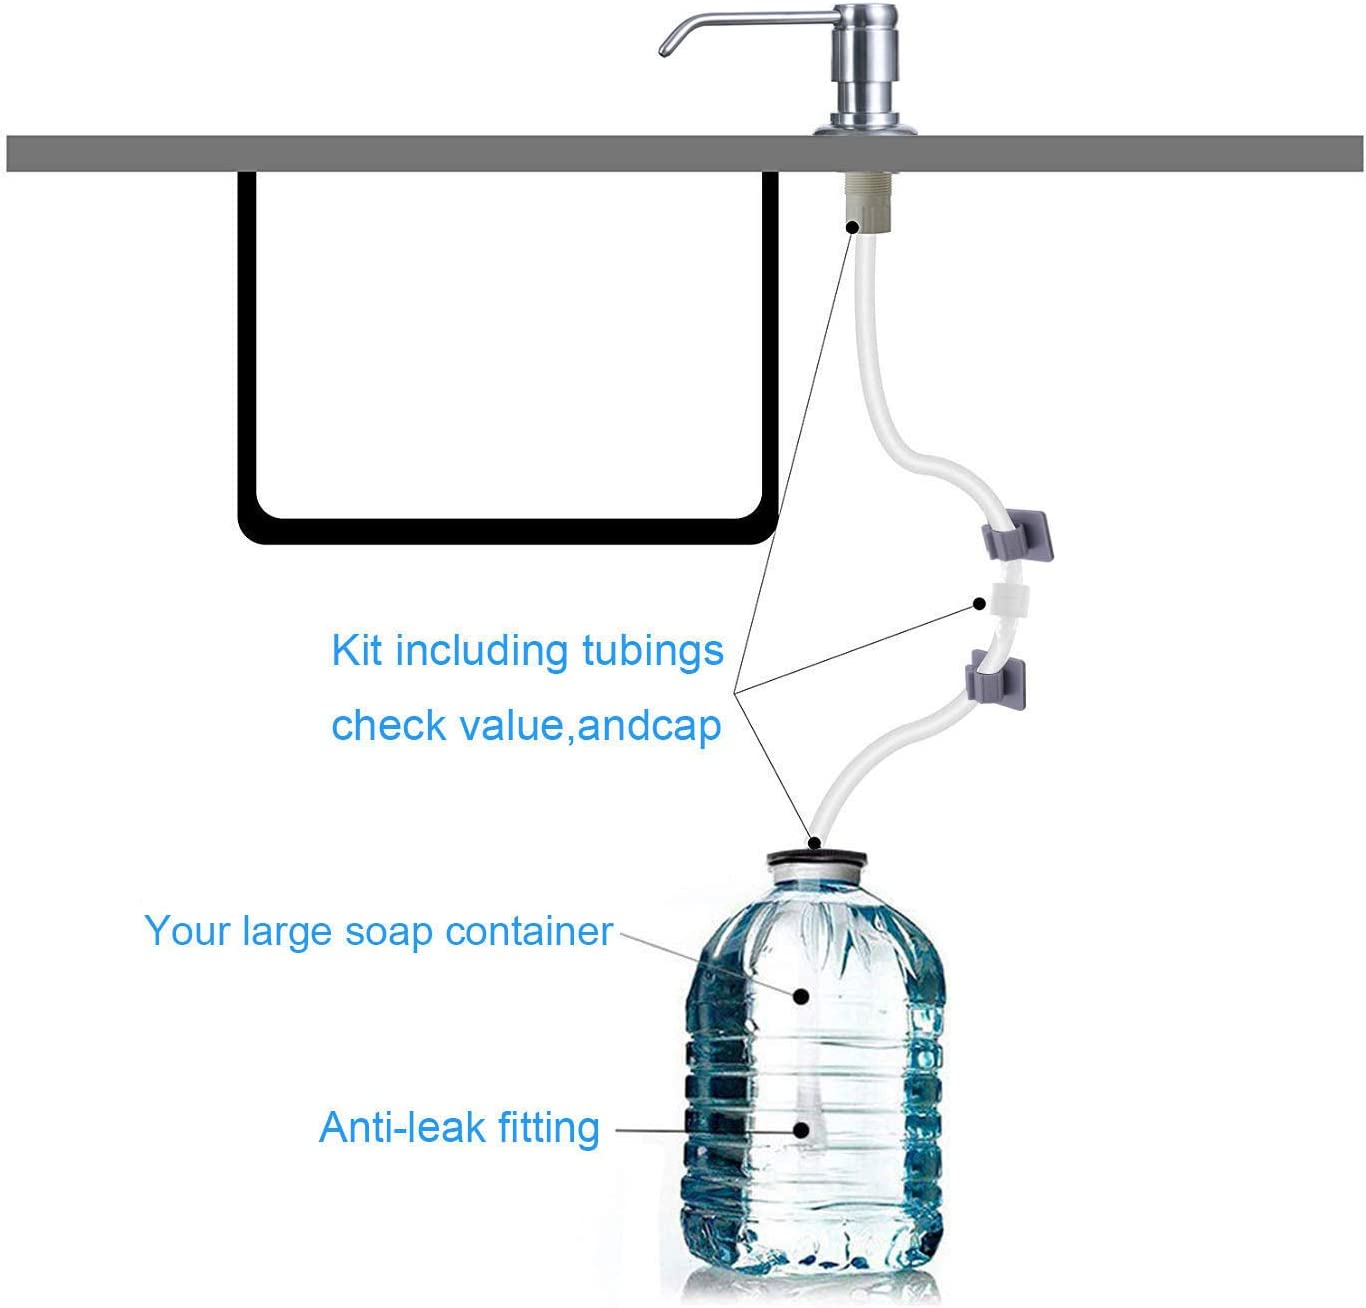 No Need To Fill The Little Bottle Again Soap Dispenser Tube Kit with Check Valve and 2 Bottle Stoppers Included Sink Soap Dispenser with 40 Extension Tube Kit Brushed Nickel